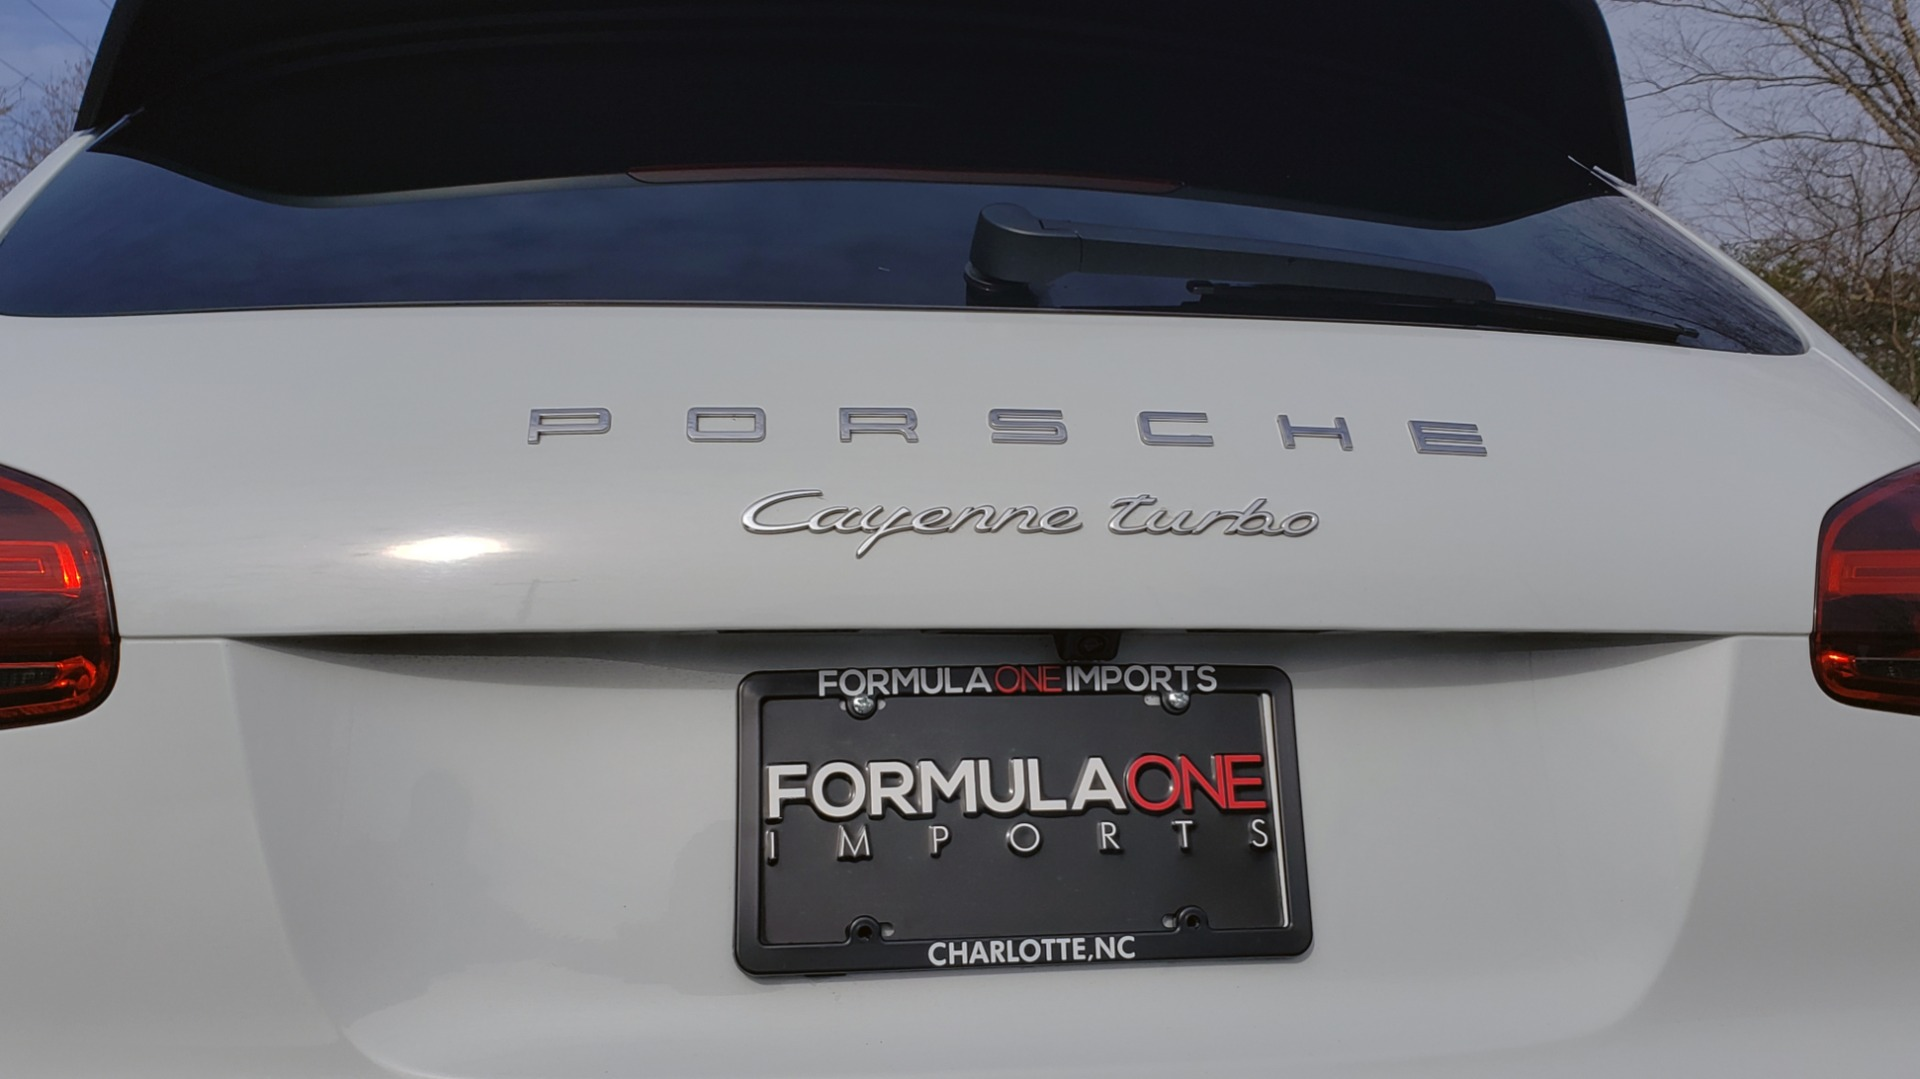 Used 2015 Porsche CAYENNE TURBO V8 / PREMIUM / NAV / SUNROOF / PARK ASSIST / LCA / REARVIEW for sale $47,995 at Formula Imports in Charlotte NC 28227 15